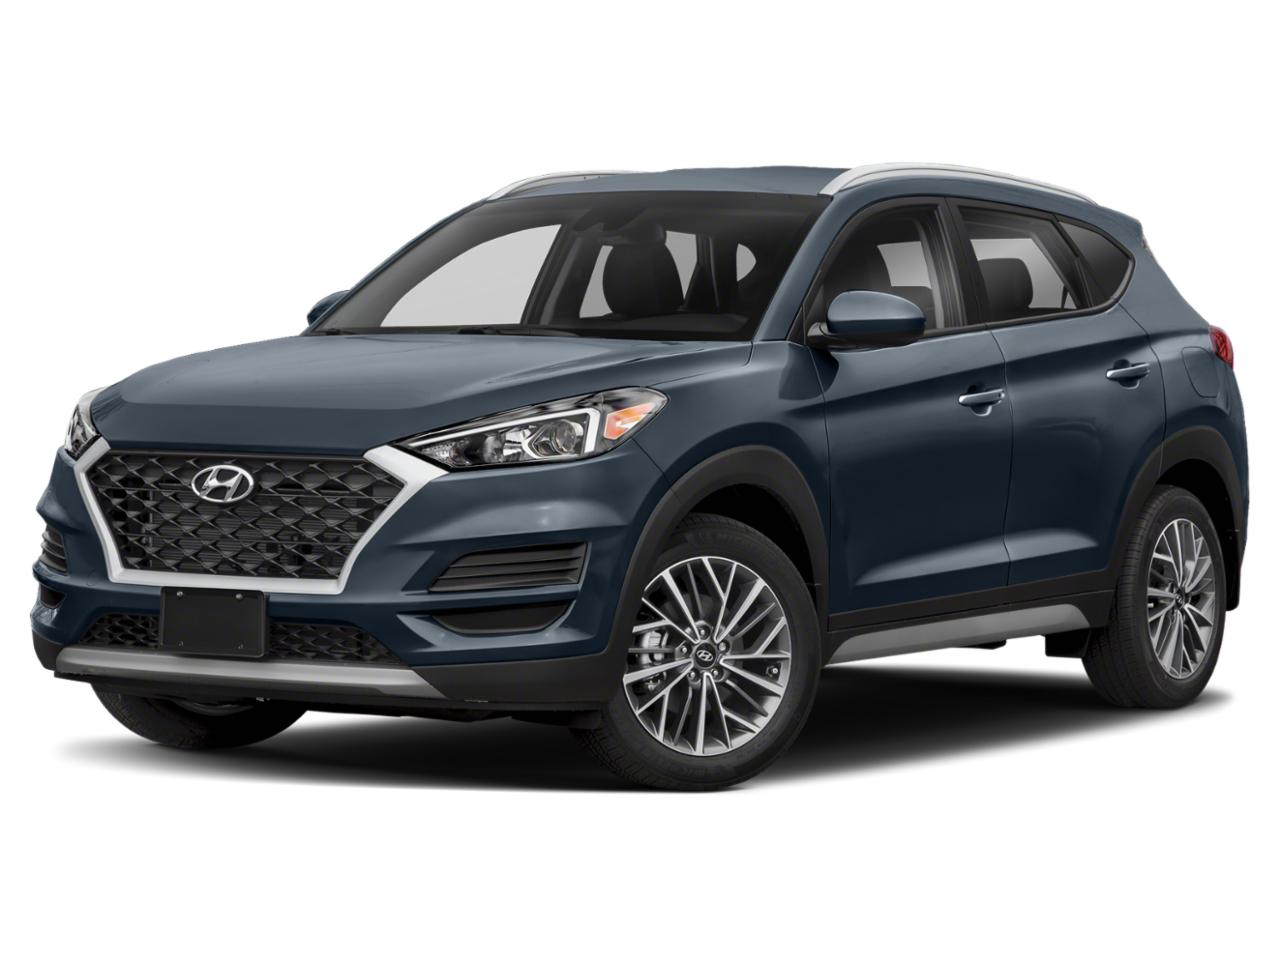 2019 Hyundai Tucson Vehicle Photo in Nashua, NH 03060